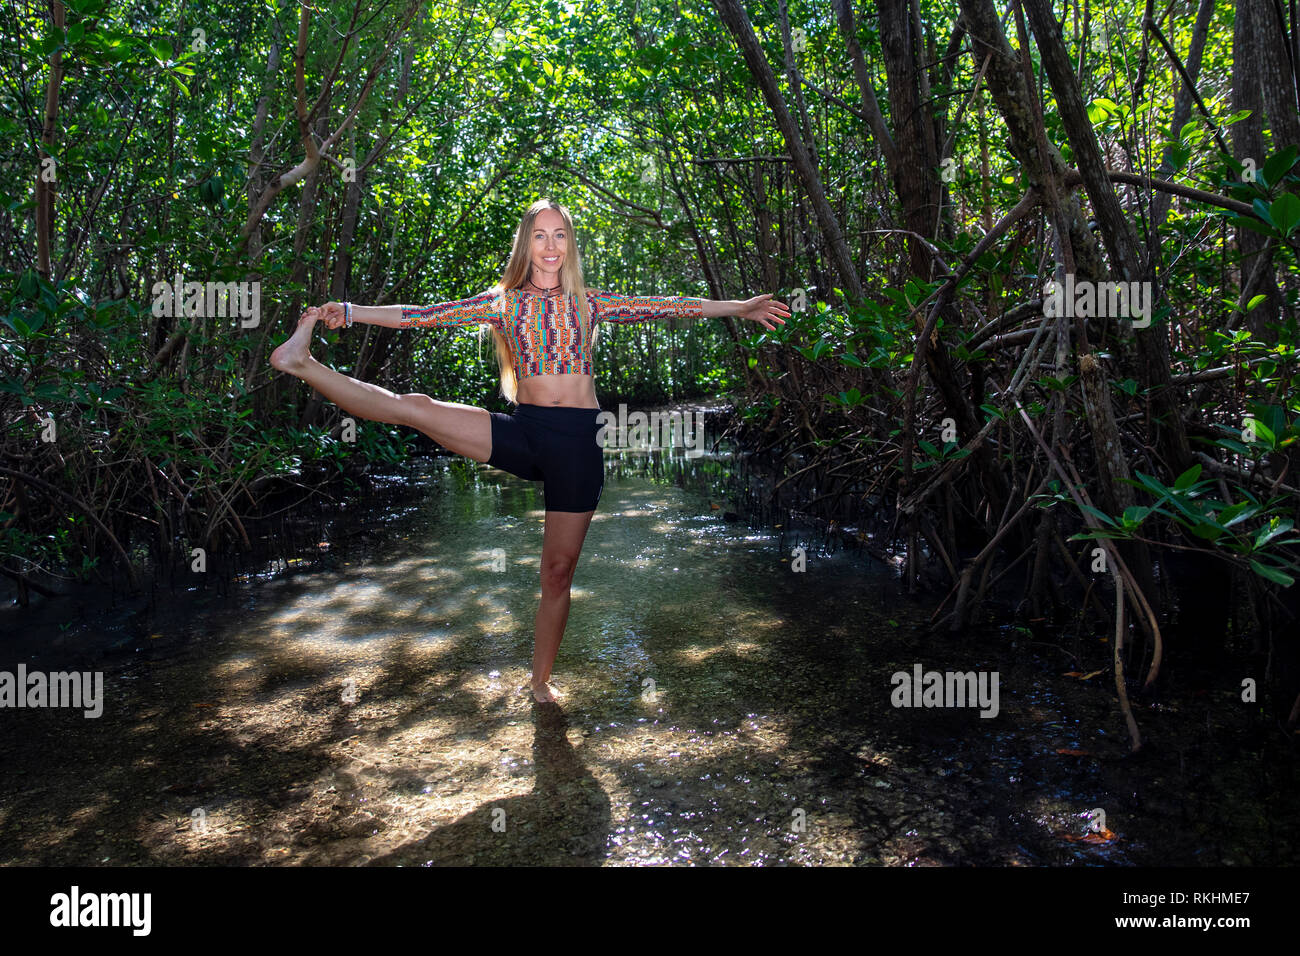 Young woman practicing yoga (Extended Hand-to-Big-Toe Pose - Utthita Hasta Padangustasana) in a natural setting - Fort Lauderdale, Florida, USA - Stock Image